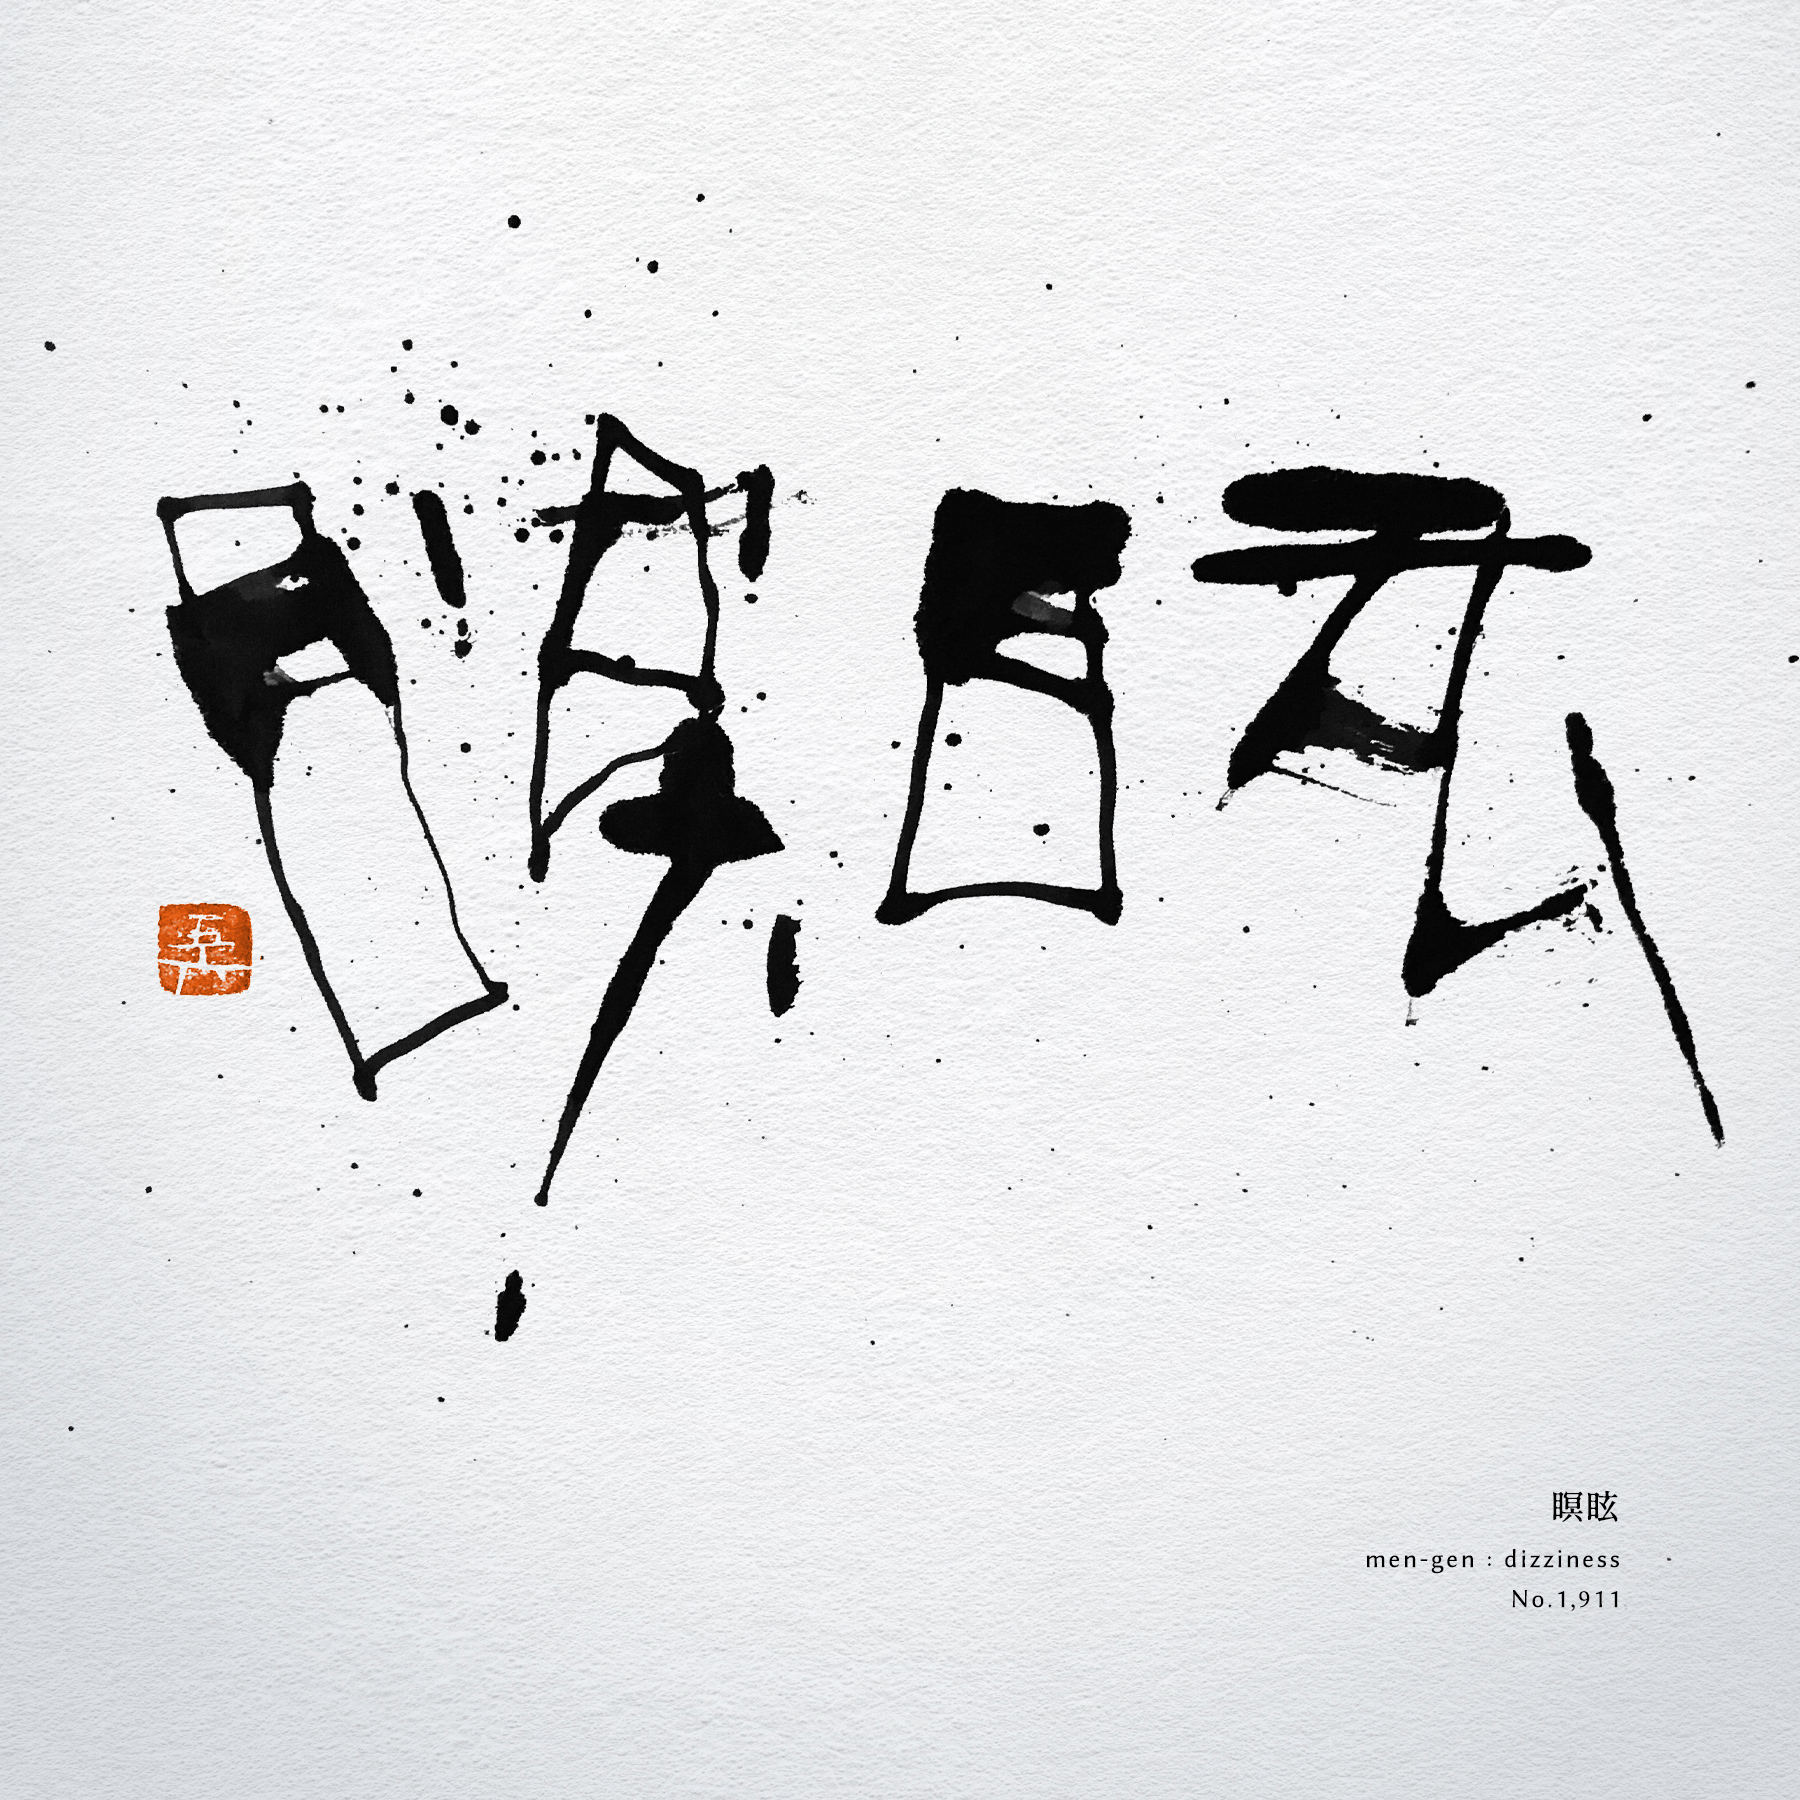 瞑眩 | dizziness 書道作品 japaneseart japanese calligraphy 書家 田川悟郎 Goroh Tagawa